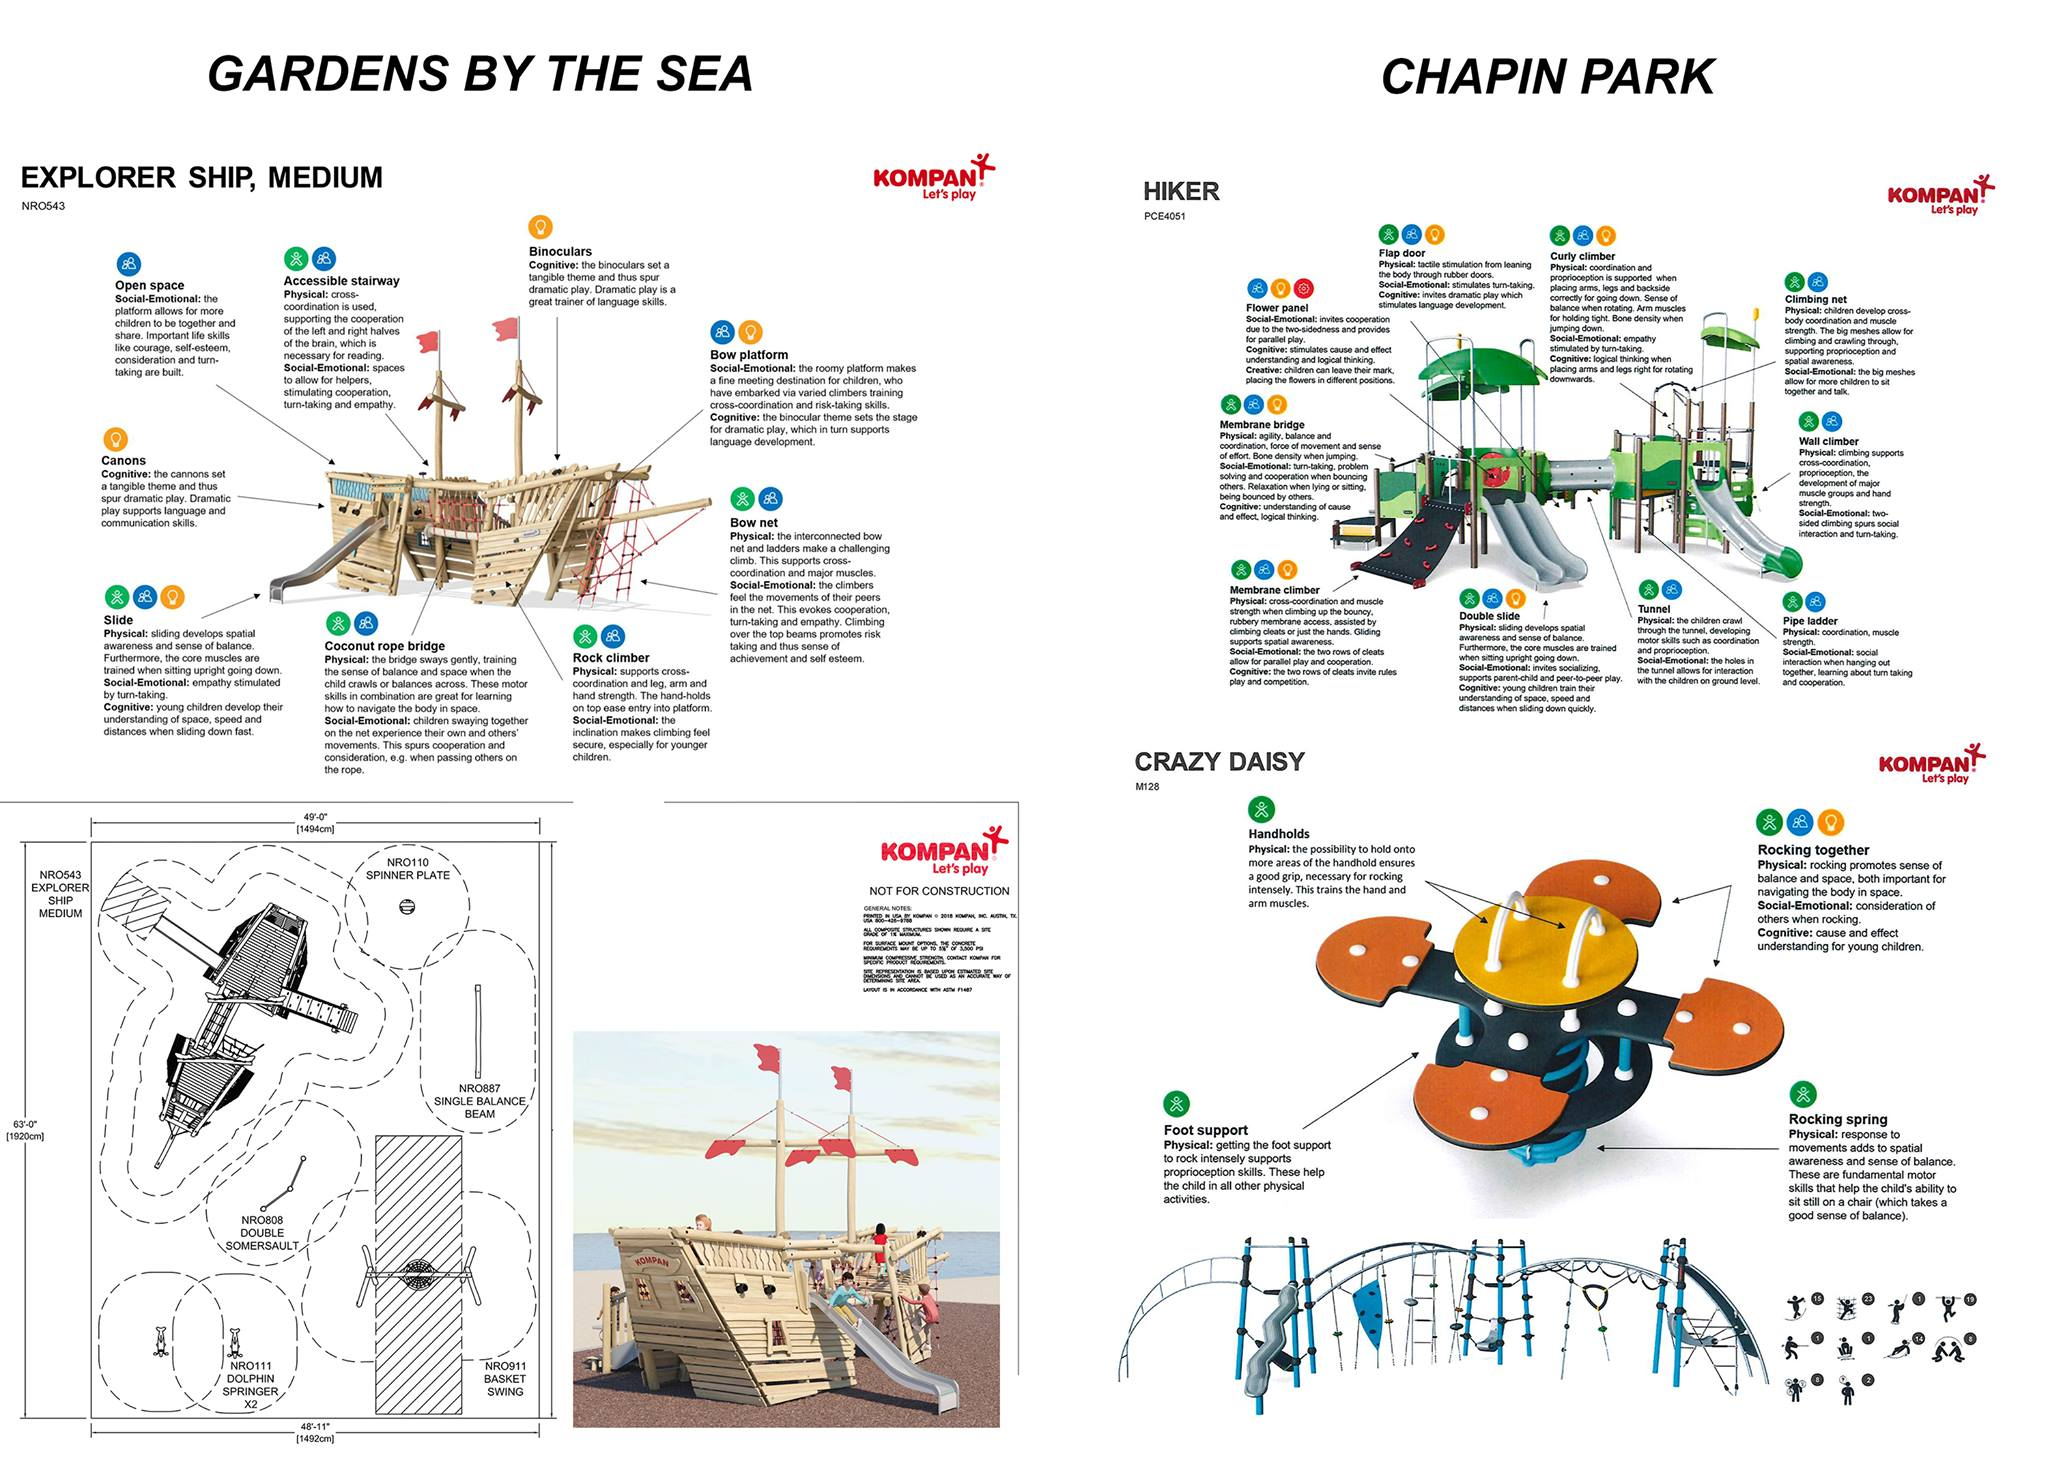 New Playground equipment Chapin Garden by tbe Sea